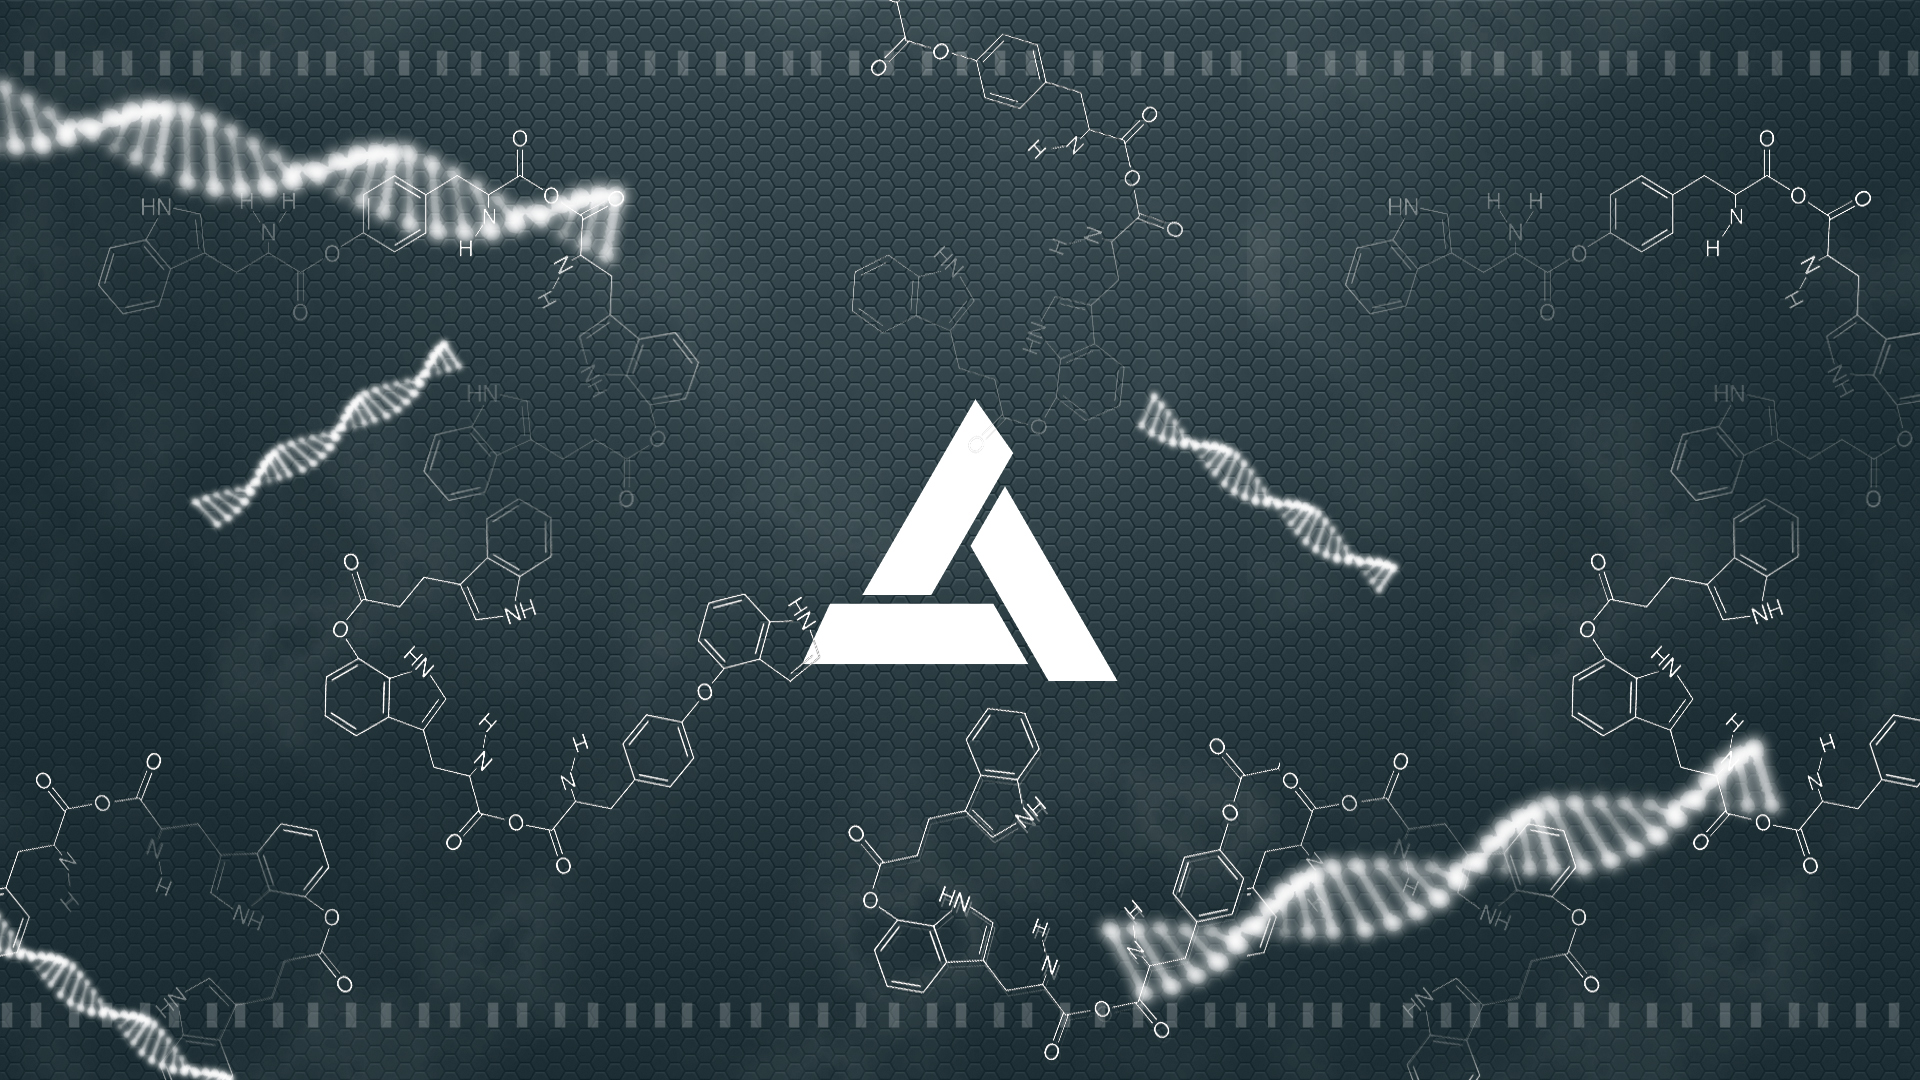 Abstract wallpaper on genetics